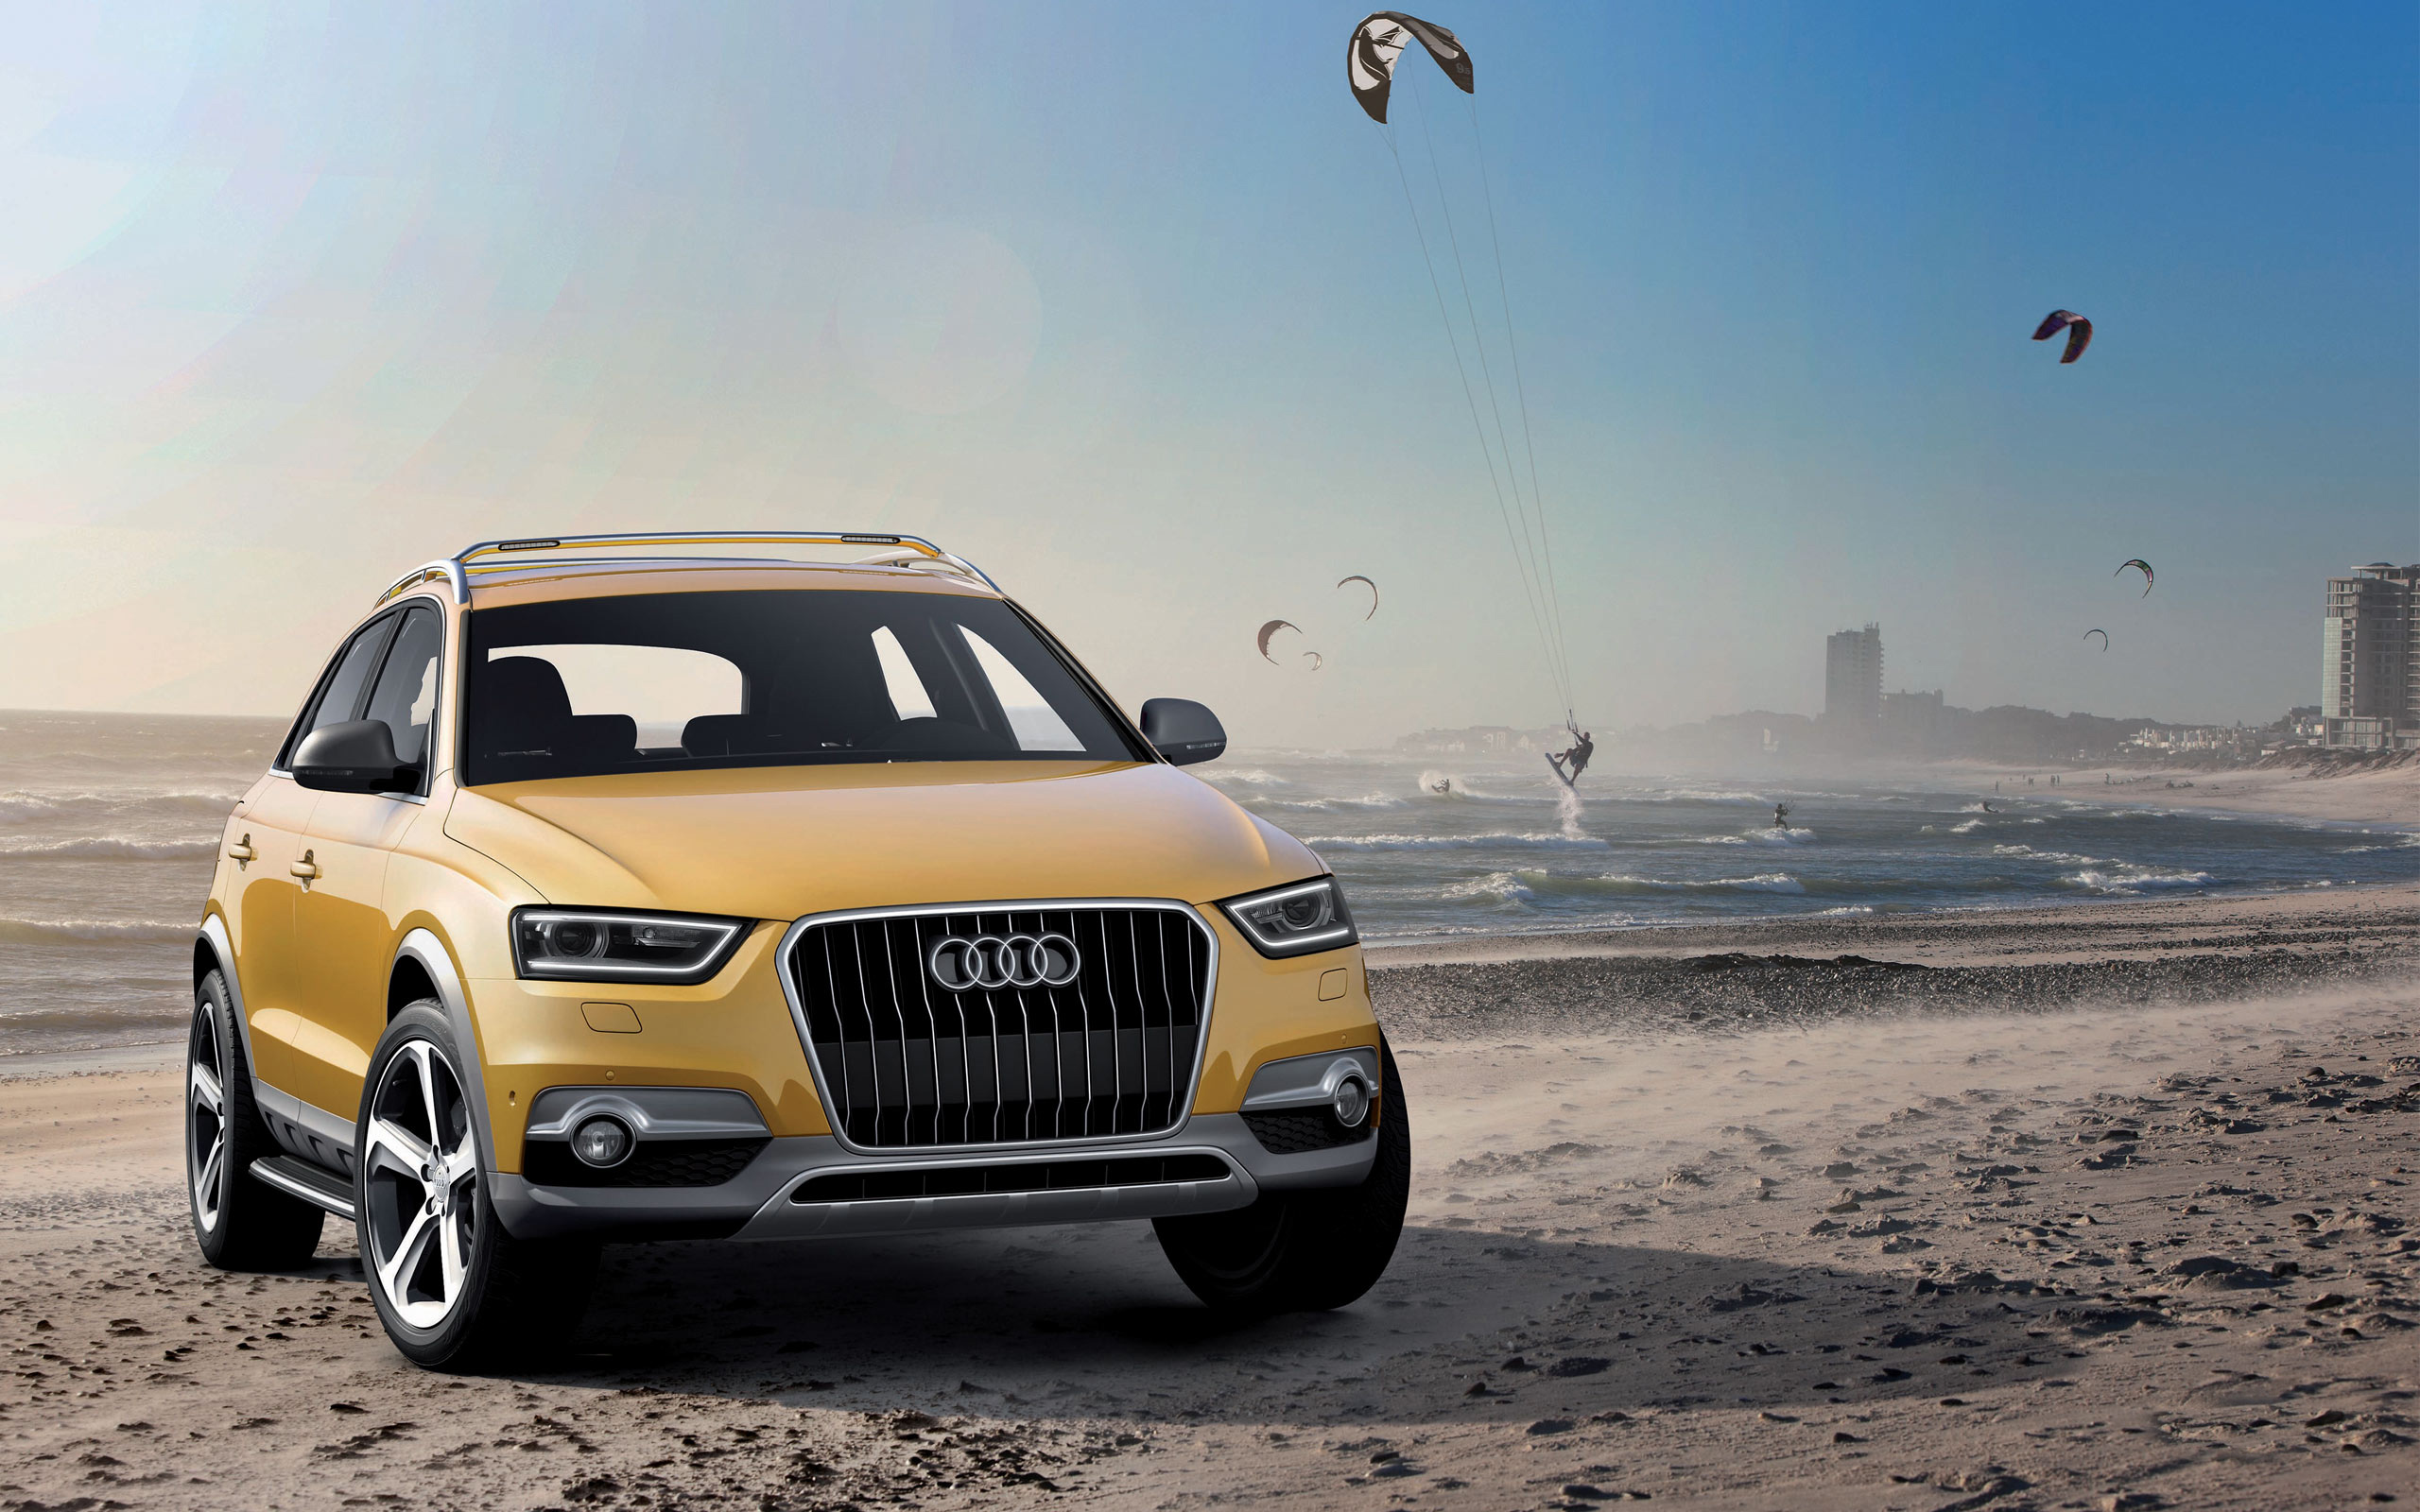 Audi Q3 Jinlong Yuneng Concept Wallpaper HD Car Wallpapers ID 2560x1600